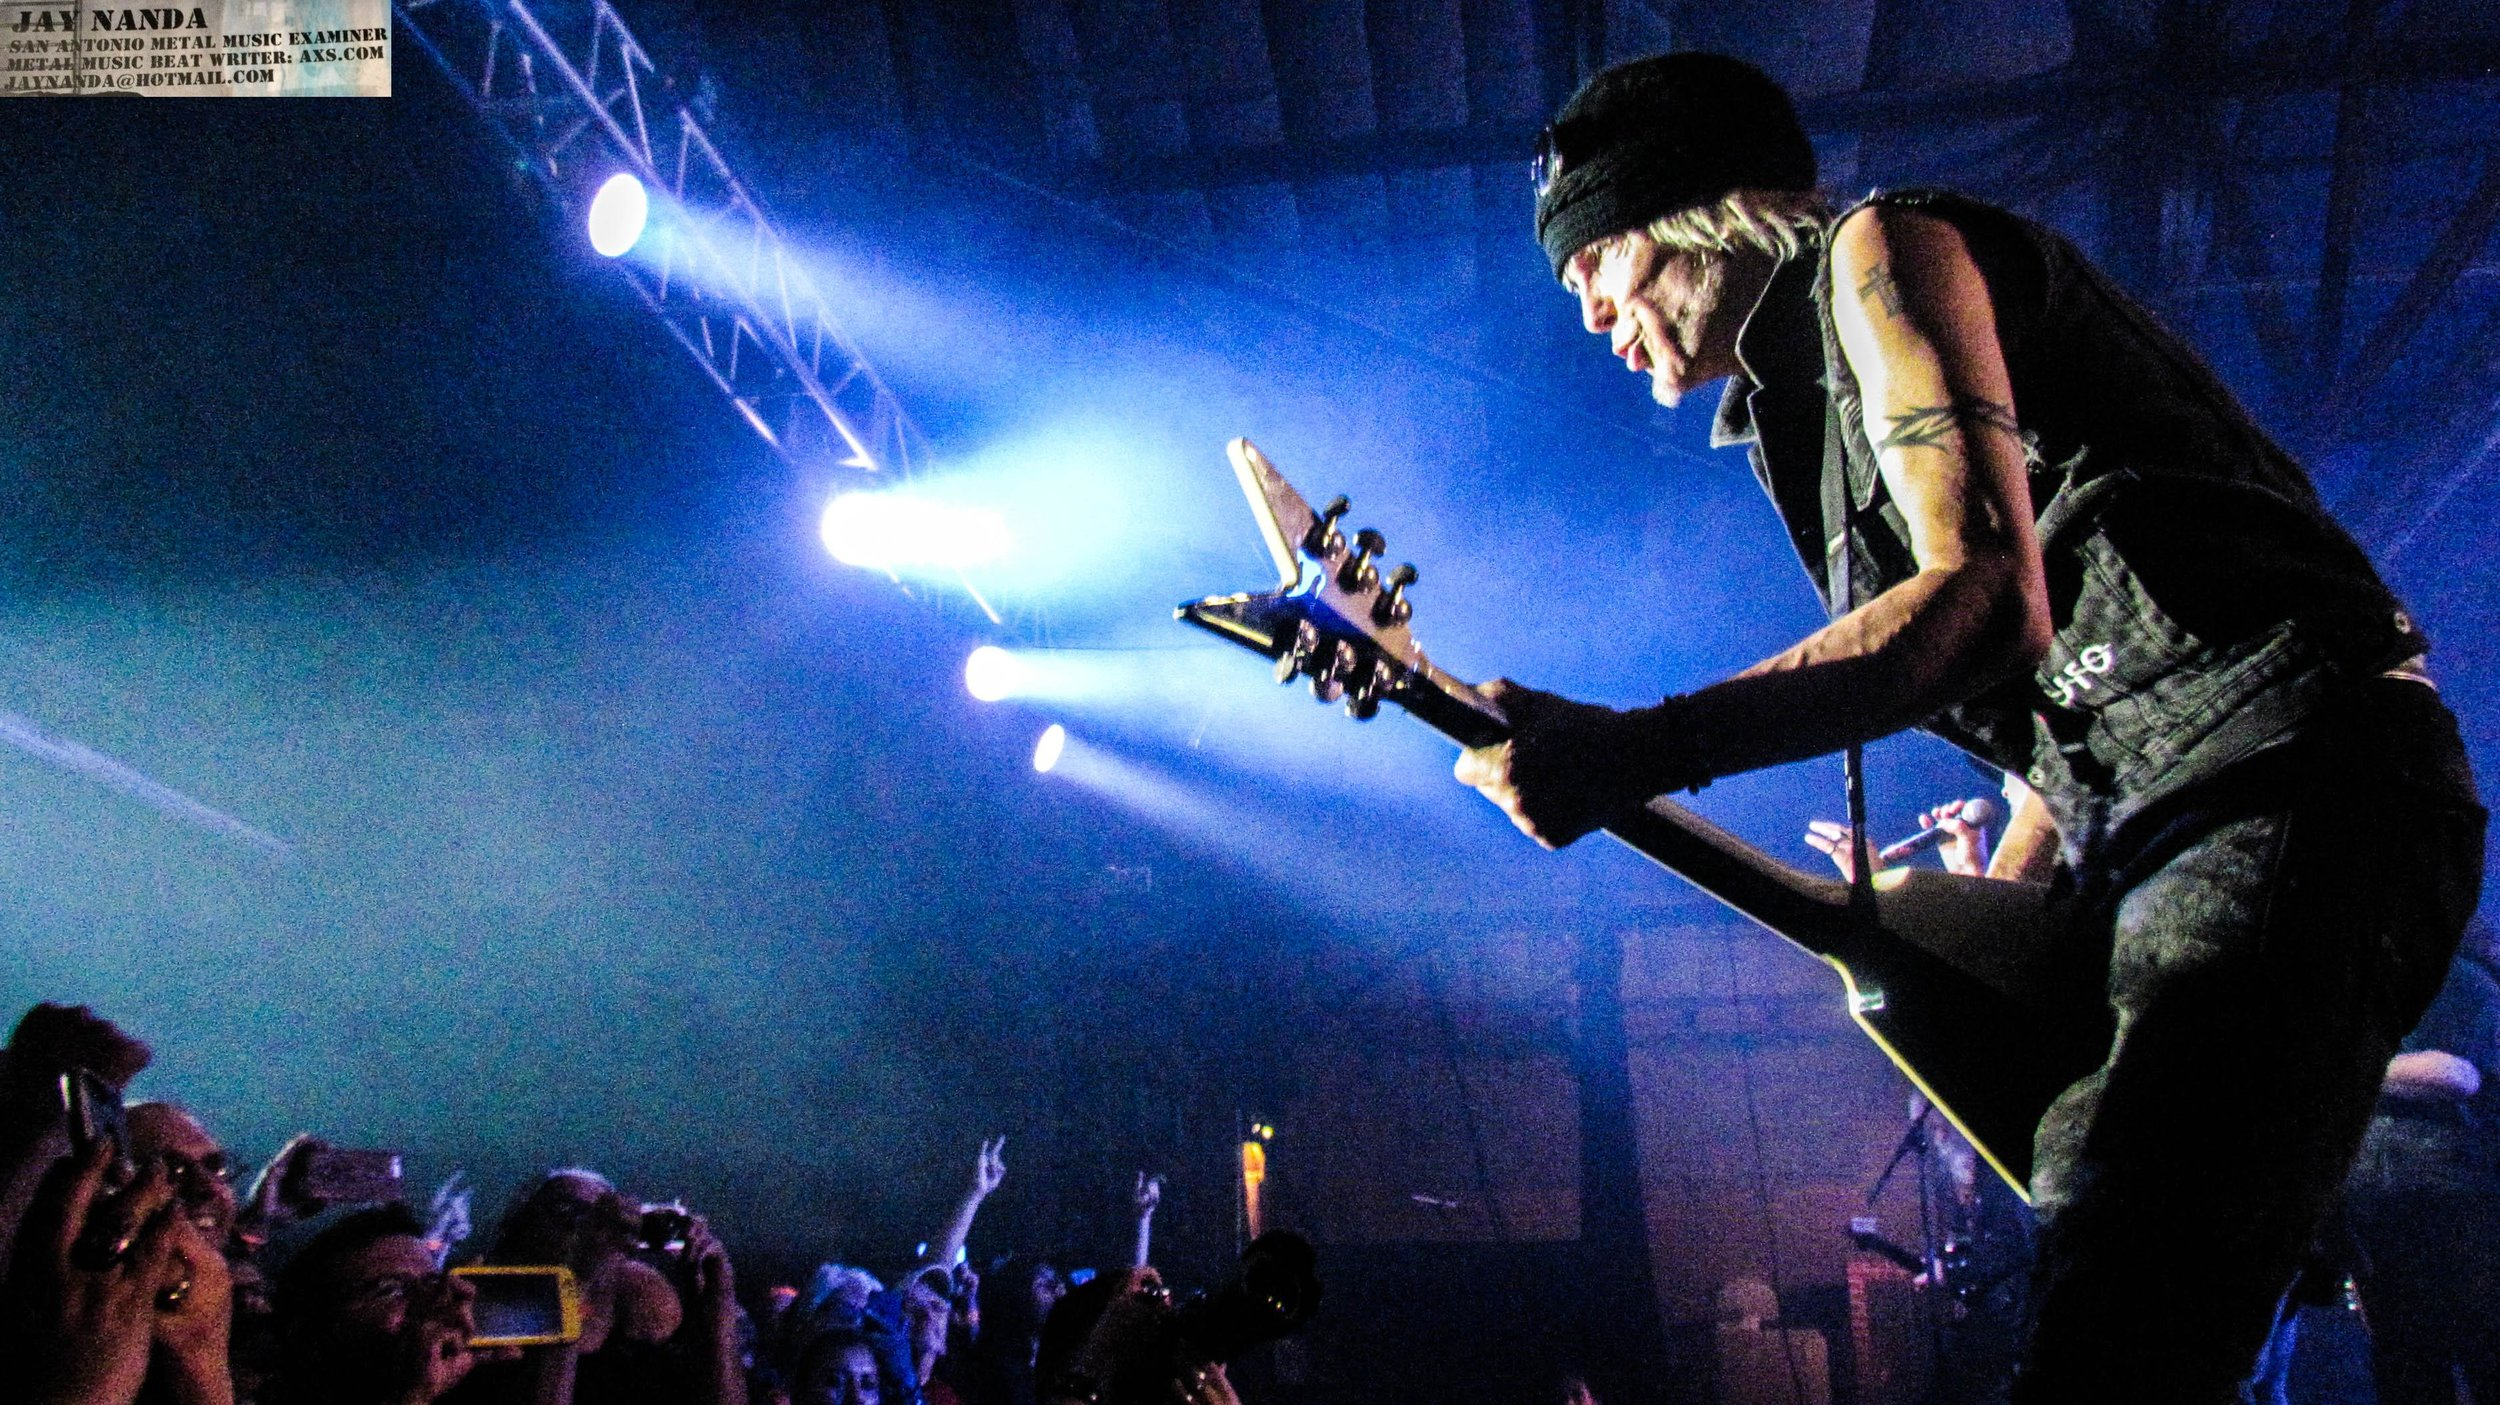 A packed Vibes Event Center was treated to nearly three hours of Schenker's influential career on the guitar.